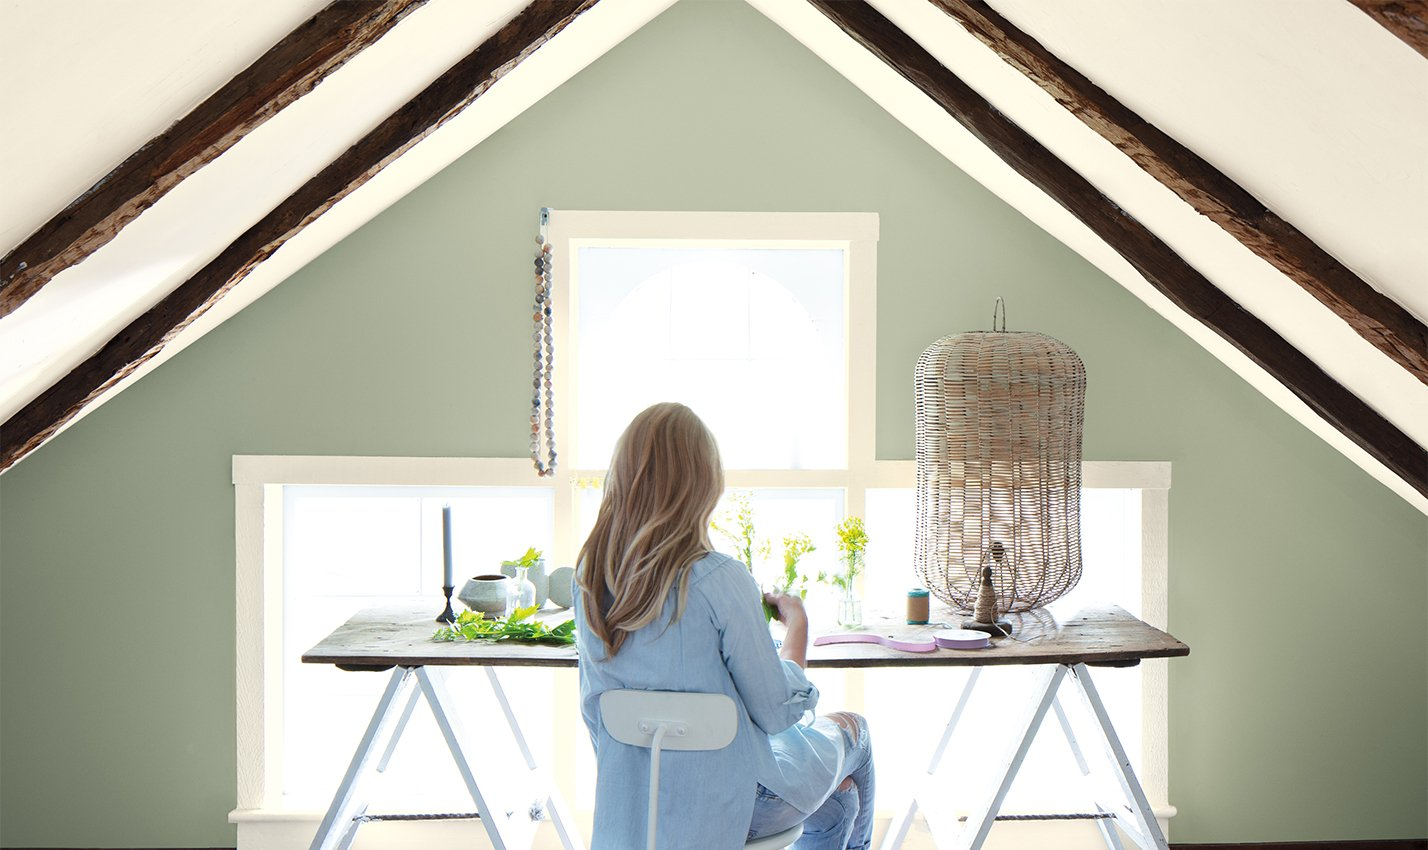 A pale sage wall with sofa and tree/Photography: Benjamin Moore/Benjamin Moore's October Mist 1495, seen here, joins 14 other colors in the brand's 2022 palette.